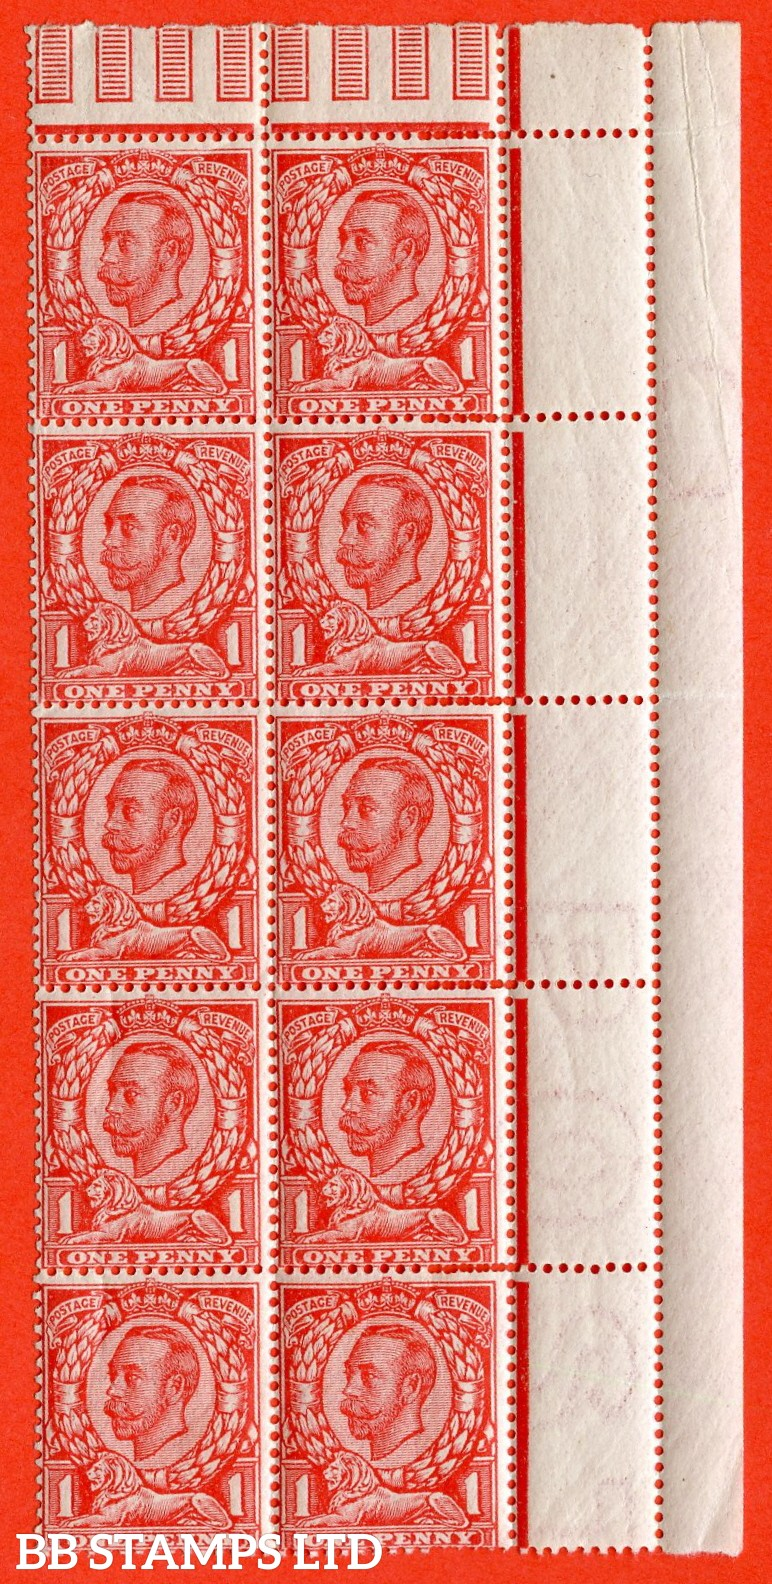 "SG. 341 a. N11 (2) b. 1d bright scarlet. Die 2. A fine UNMOUNTED MINT right hand marginal block of 10 with the top left stamp clearly showing the "" NO CROSS ON CROWN variety. Also a super "" MIS - PERF "" error."